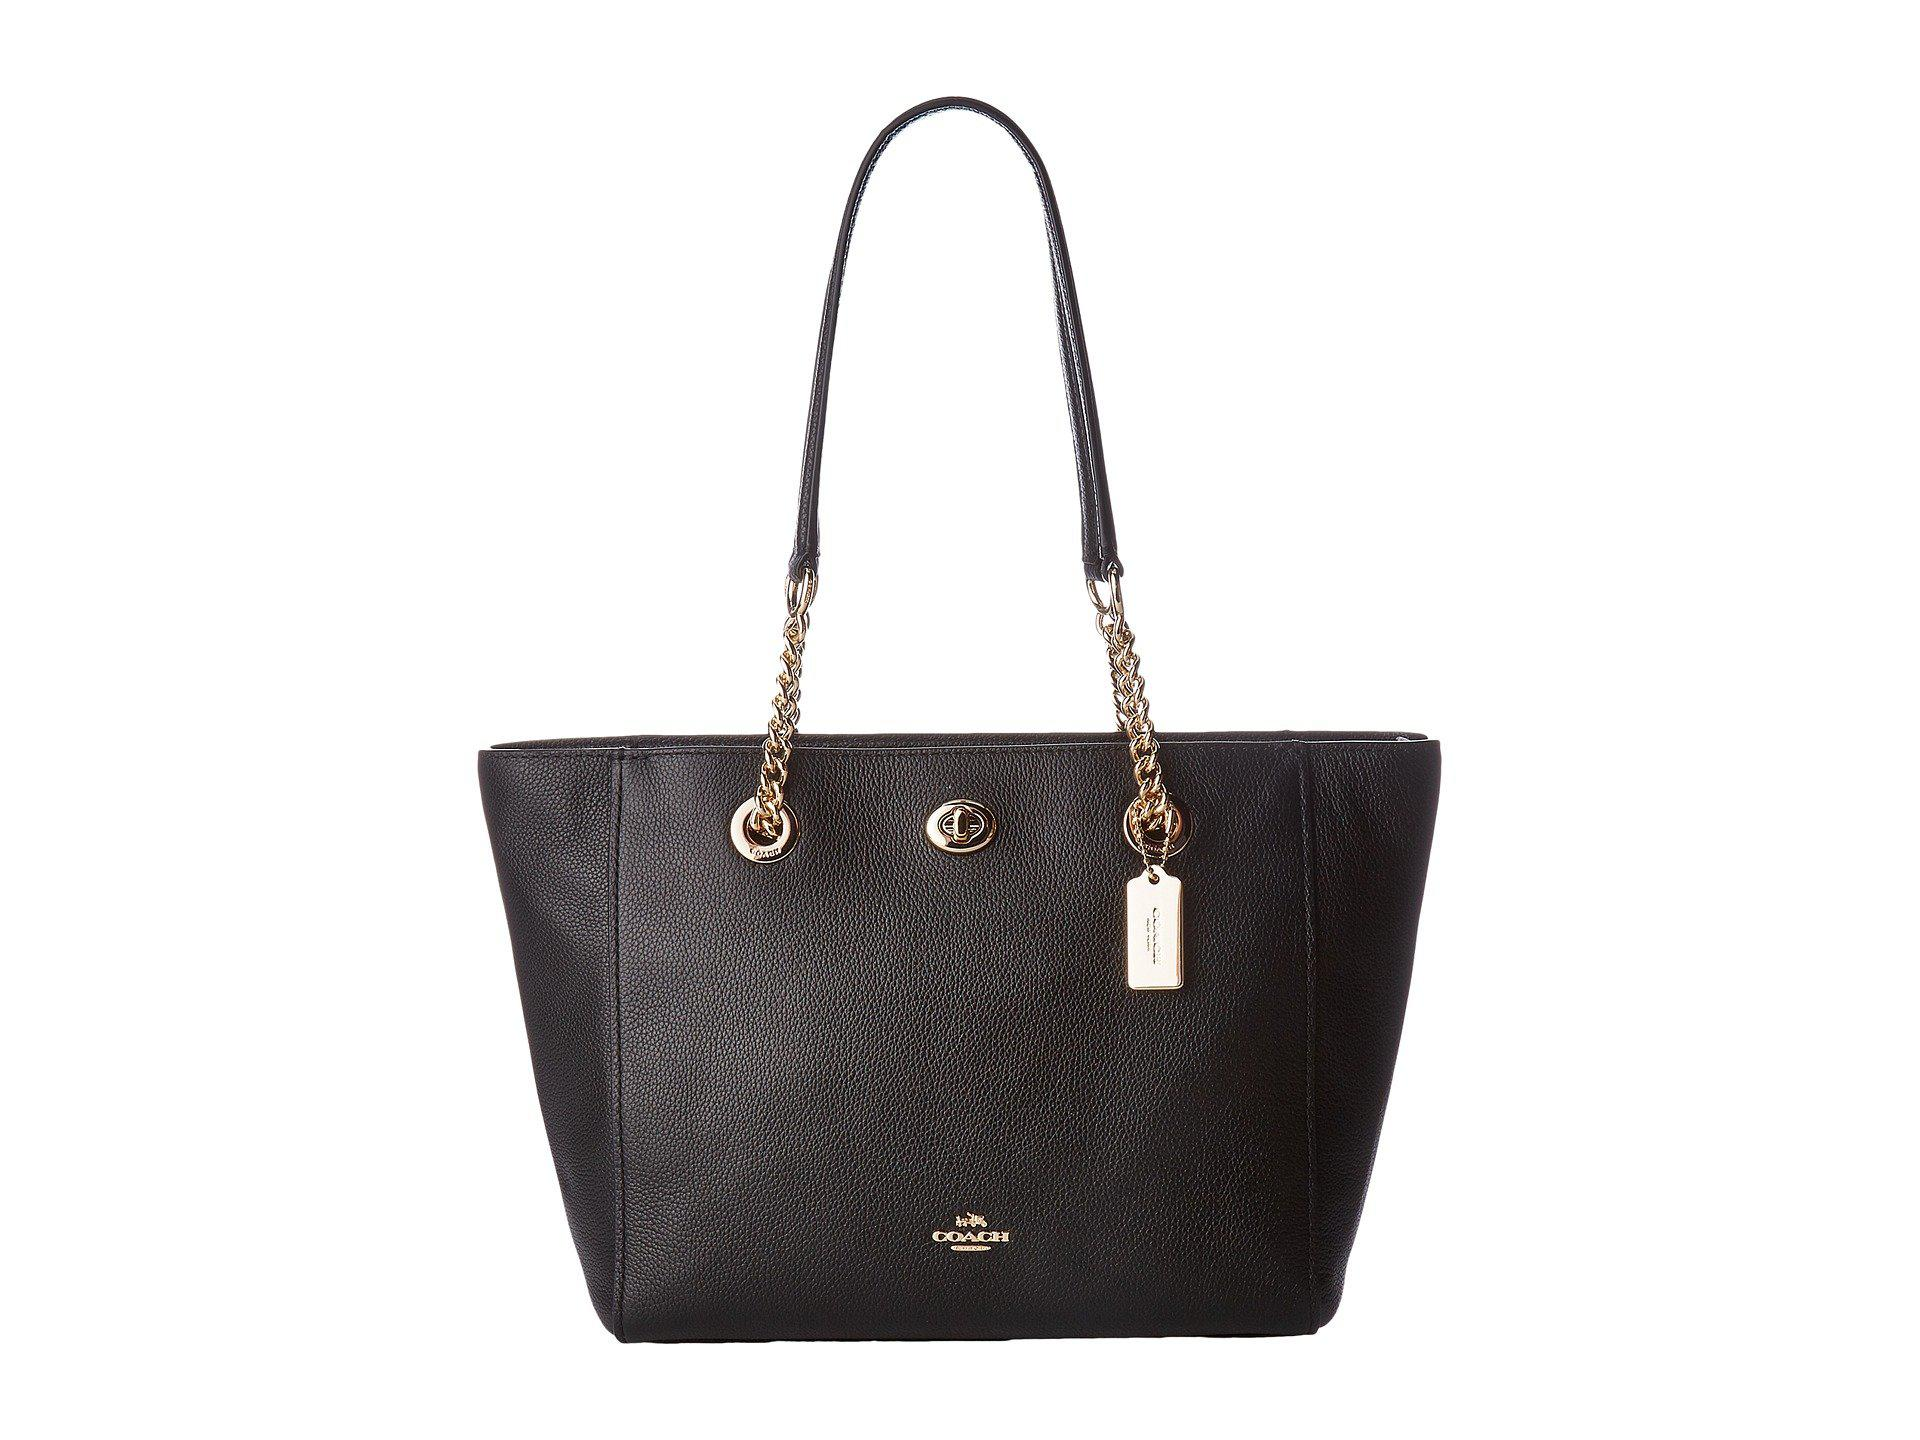 Tote - Polished Pebbled Leather Chain Tote 27 Peony - rose - Tote for ladies Coach E2ChIIxL